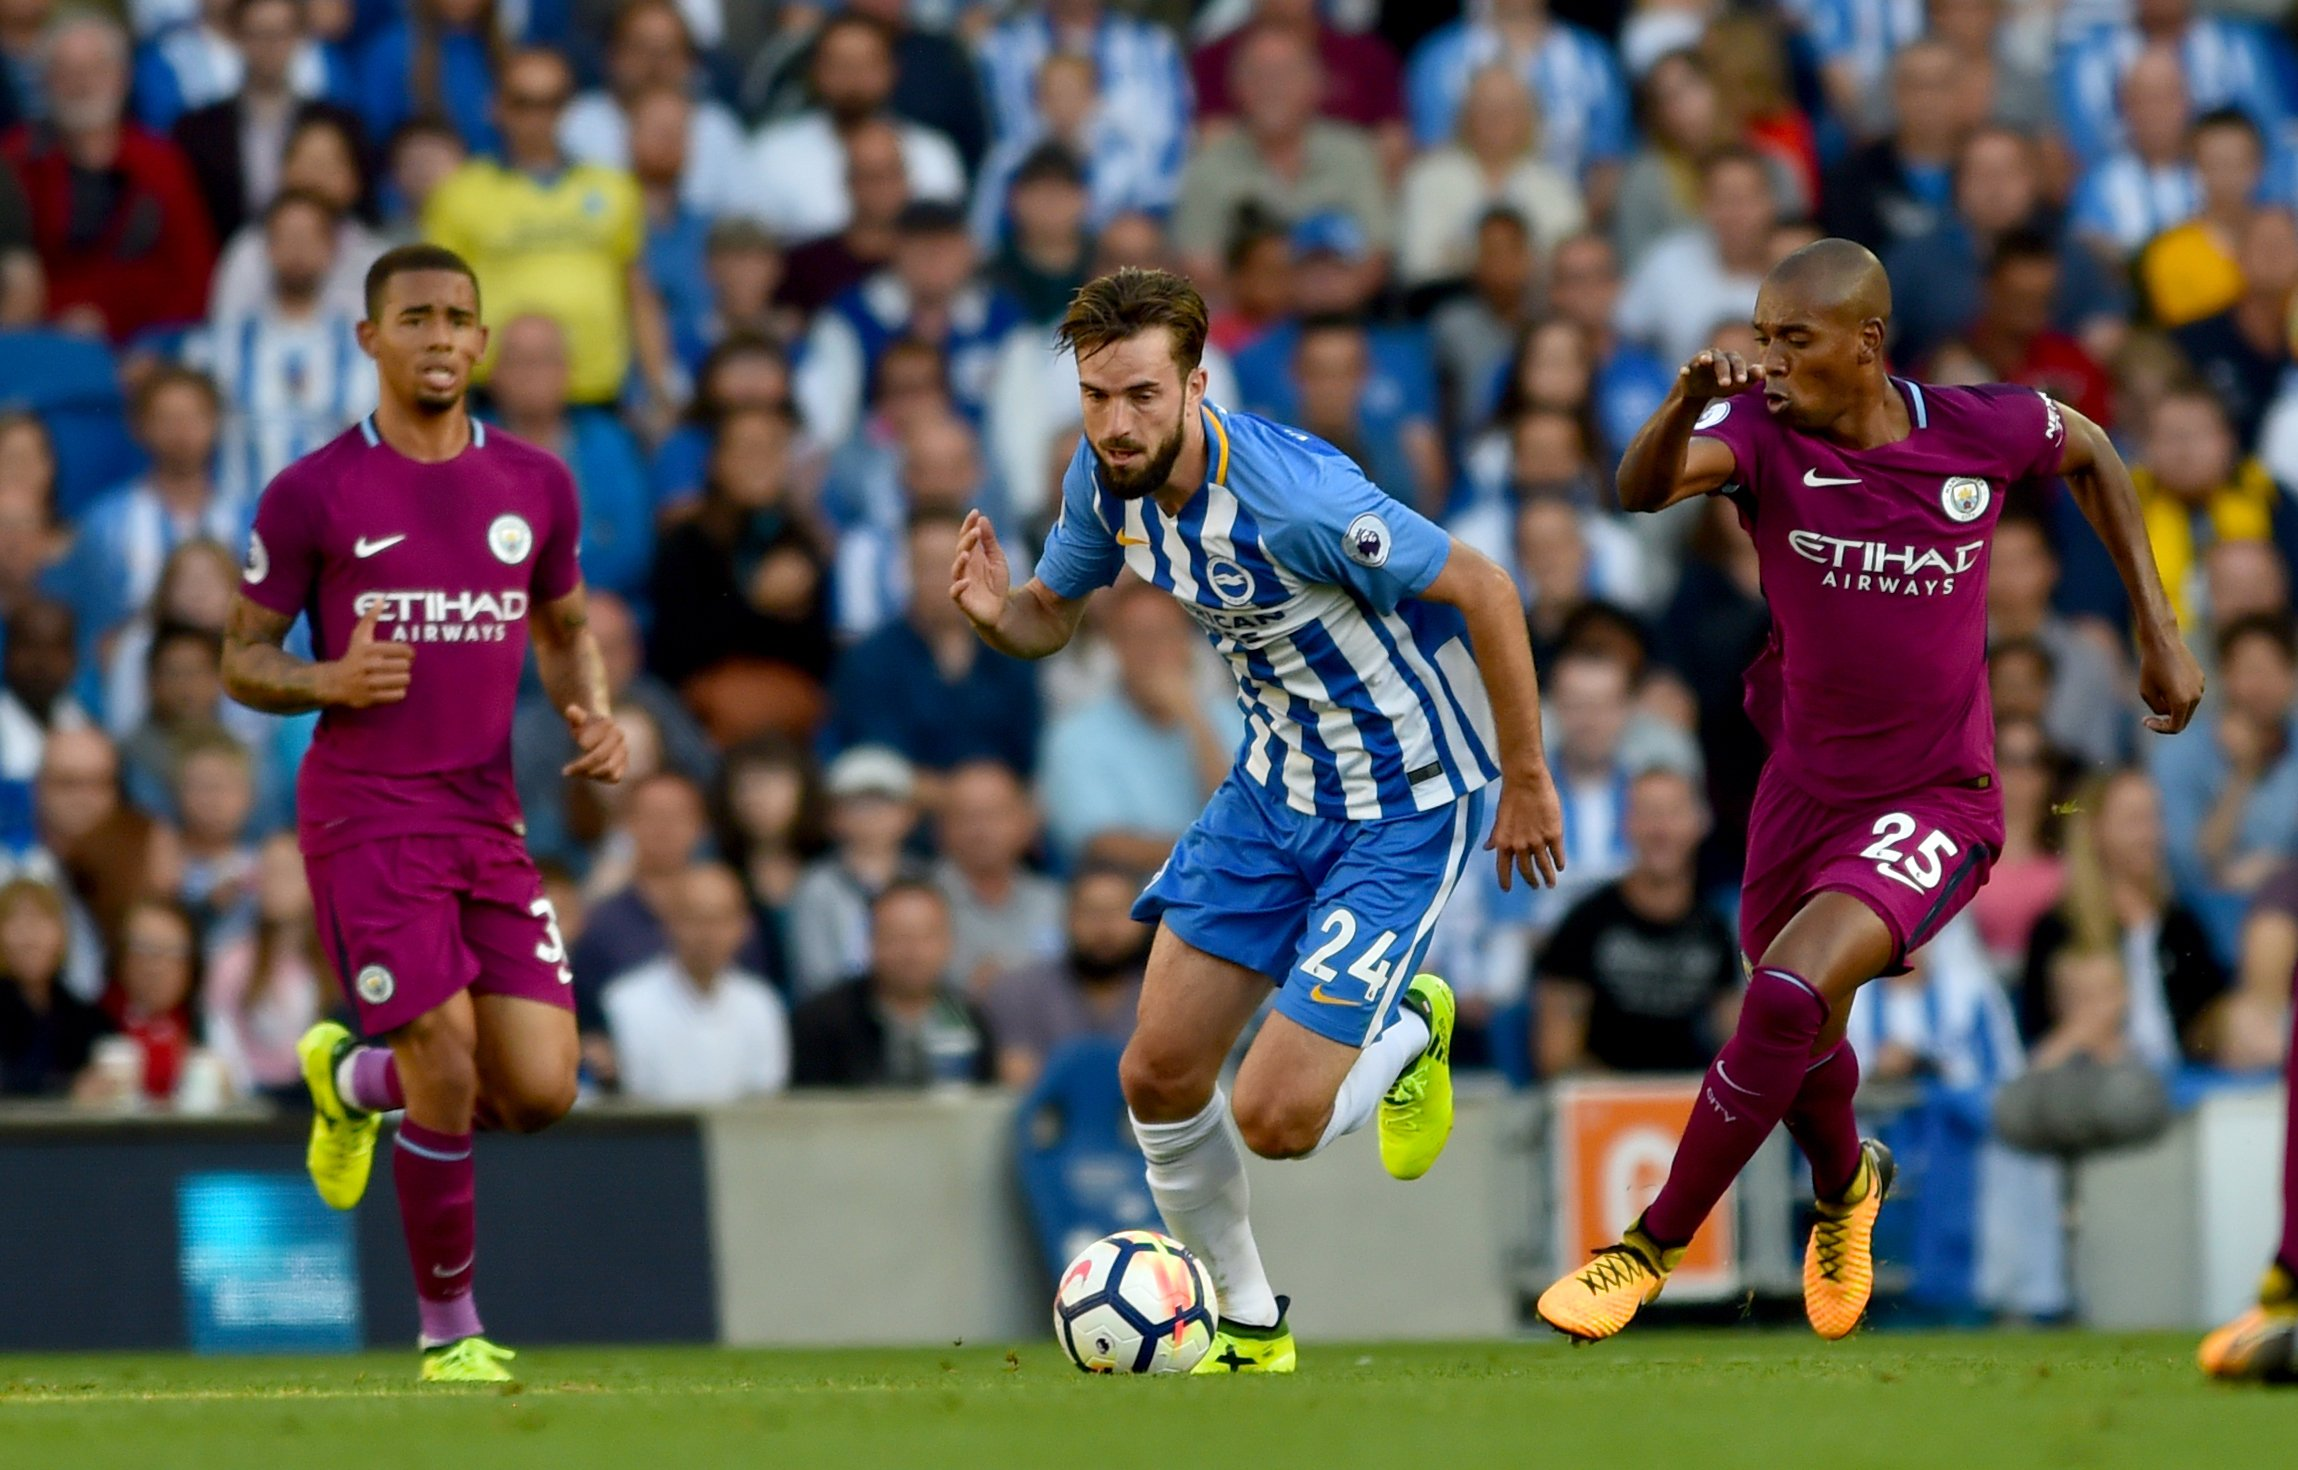 Albion could face Manchester City towards the end of the season